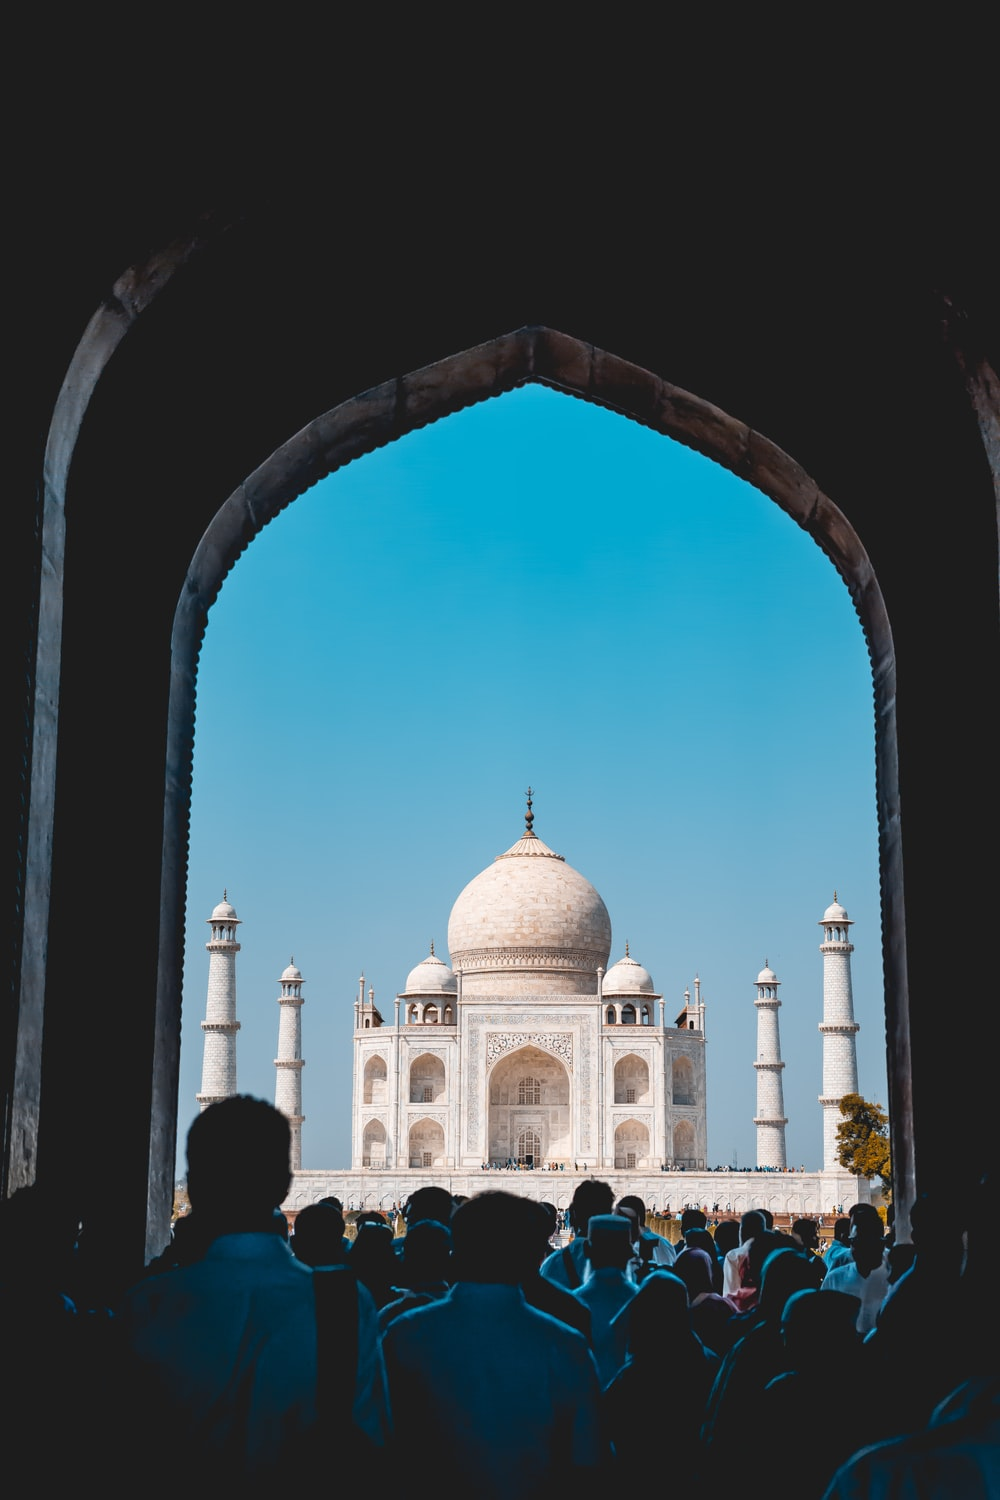 people going towards Taj Mahal, India during day